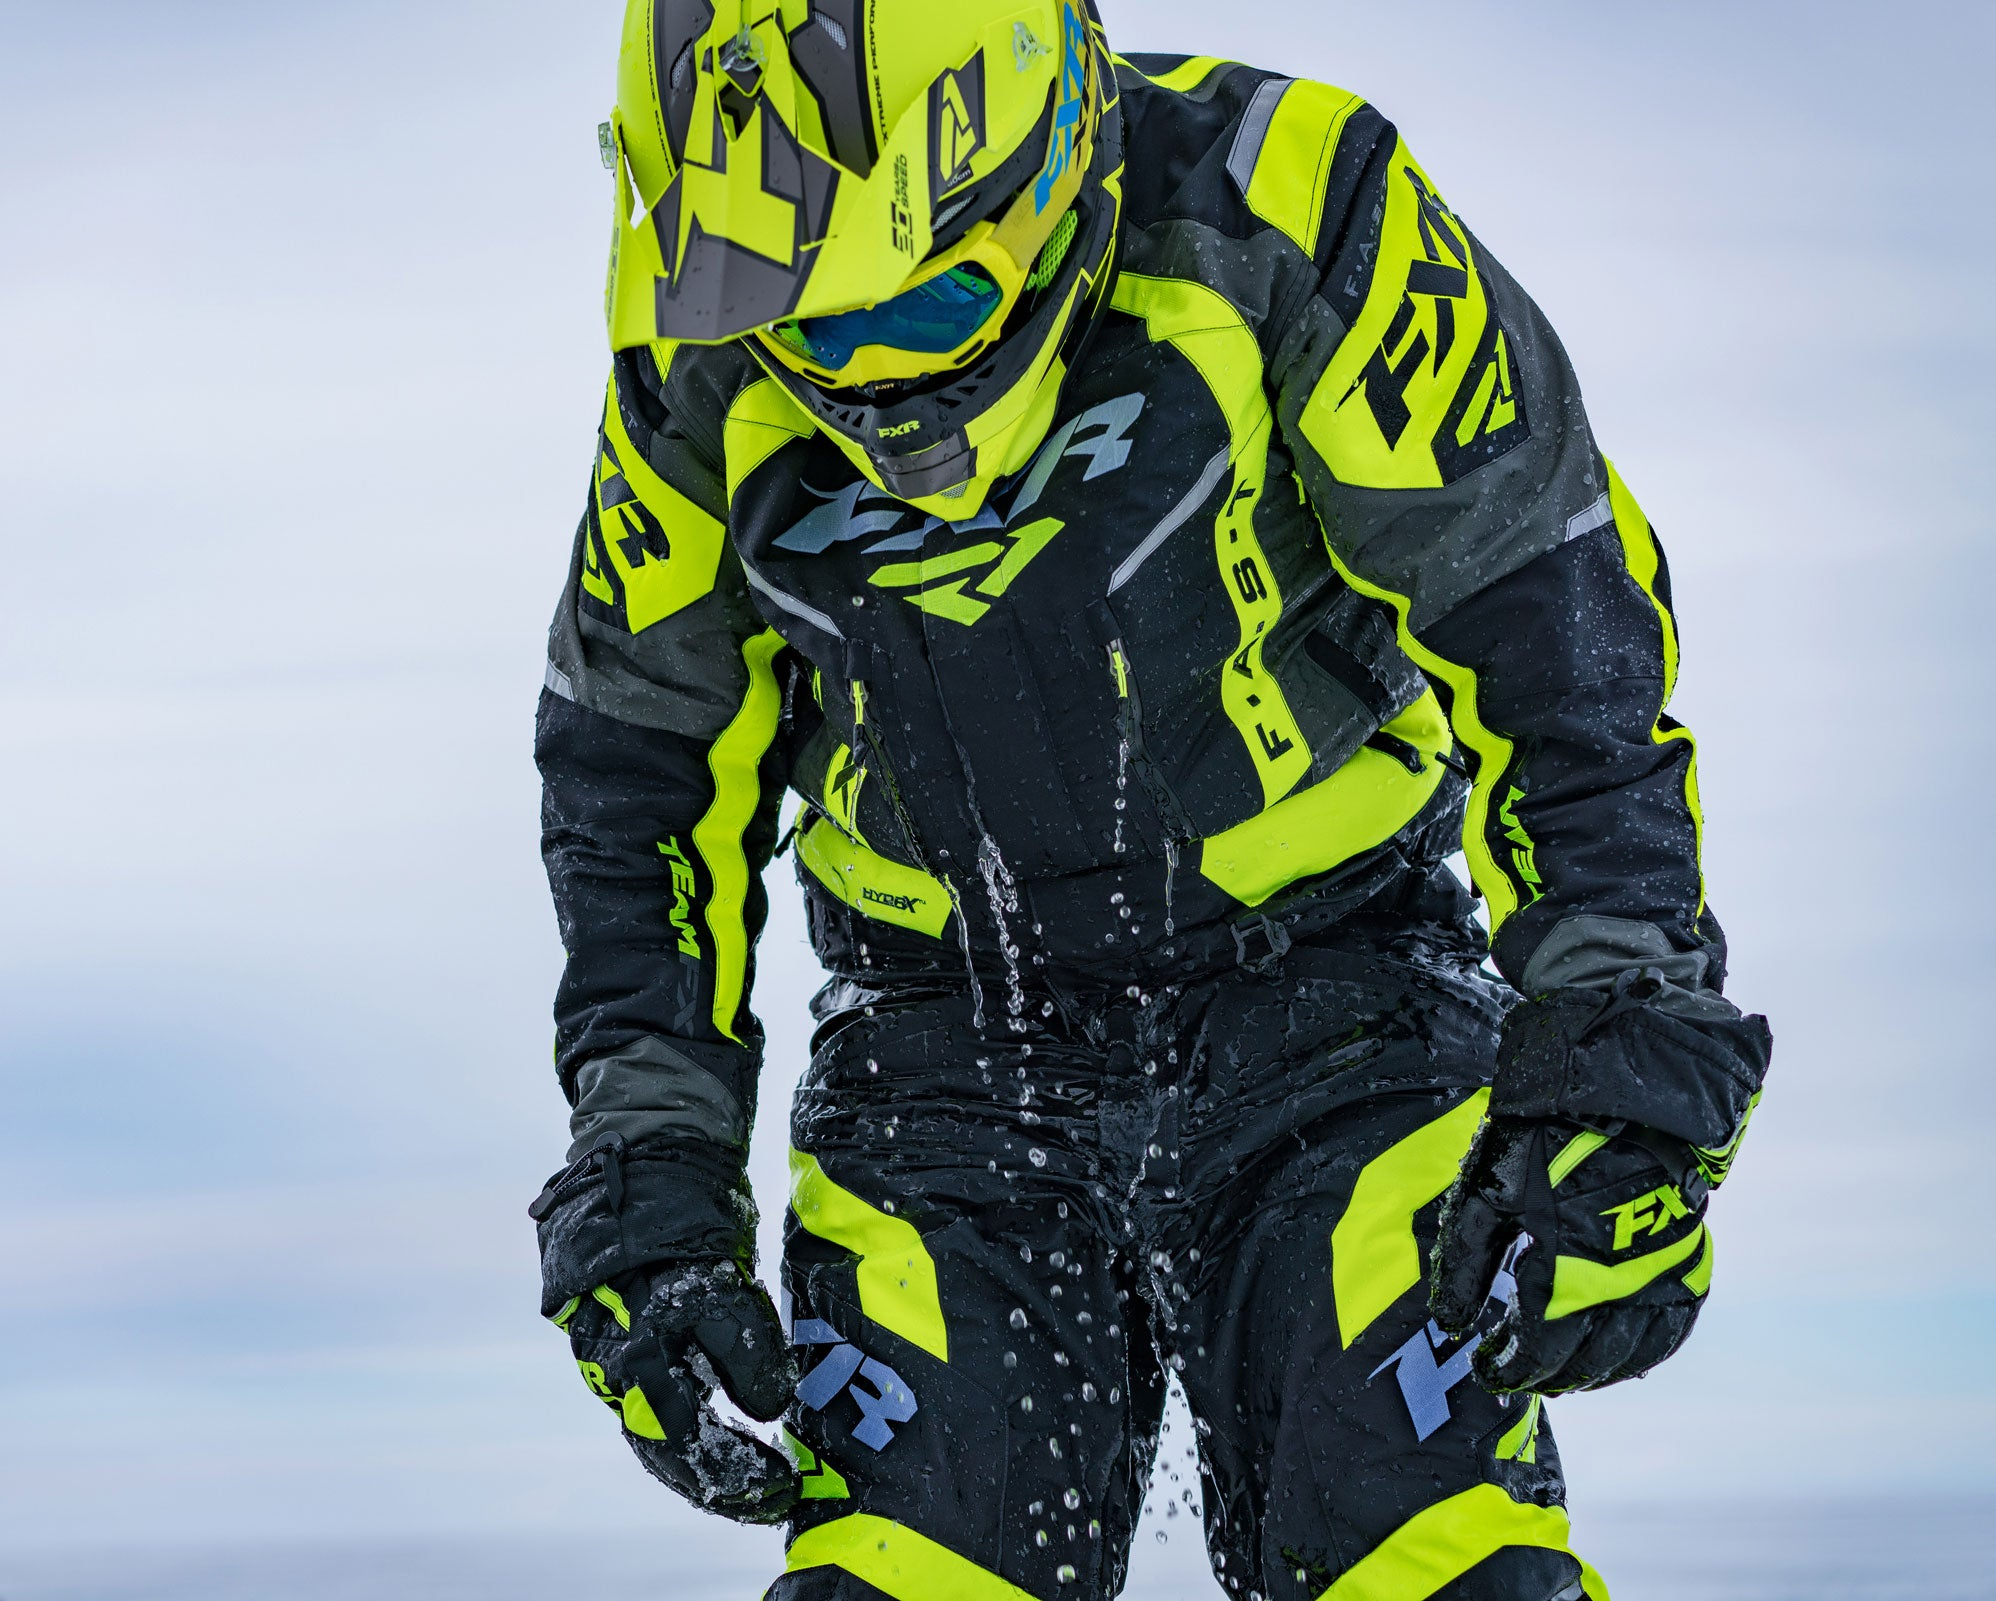 An image of a guy in FXR's F.A.S.T suit demonstrating the wet/dry insulation feature